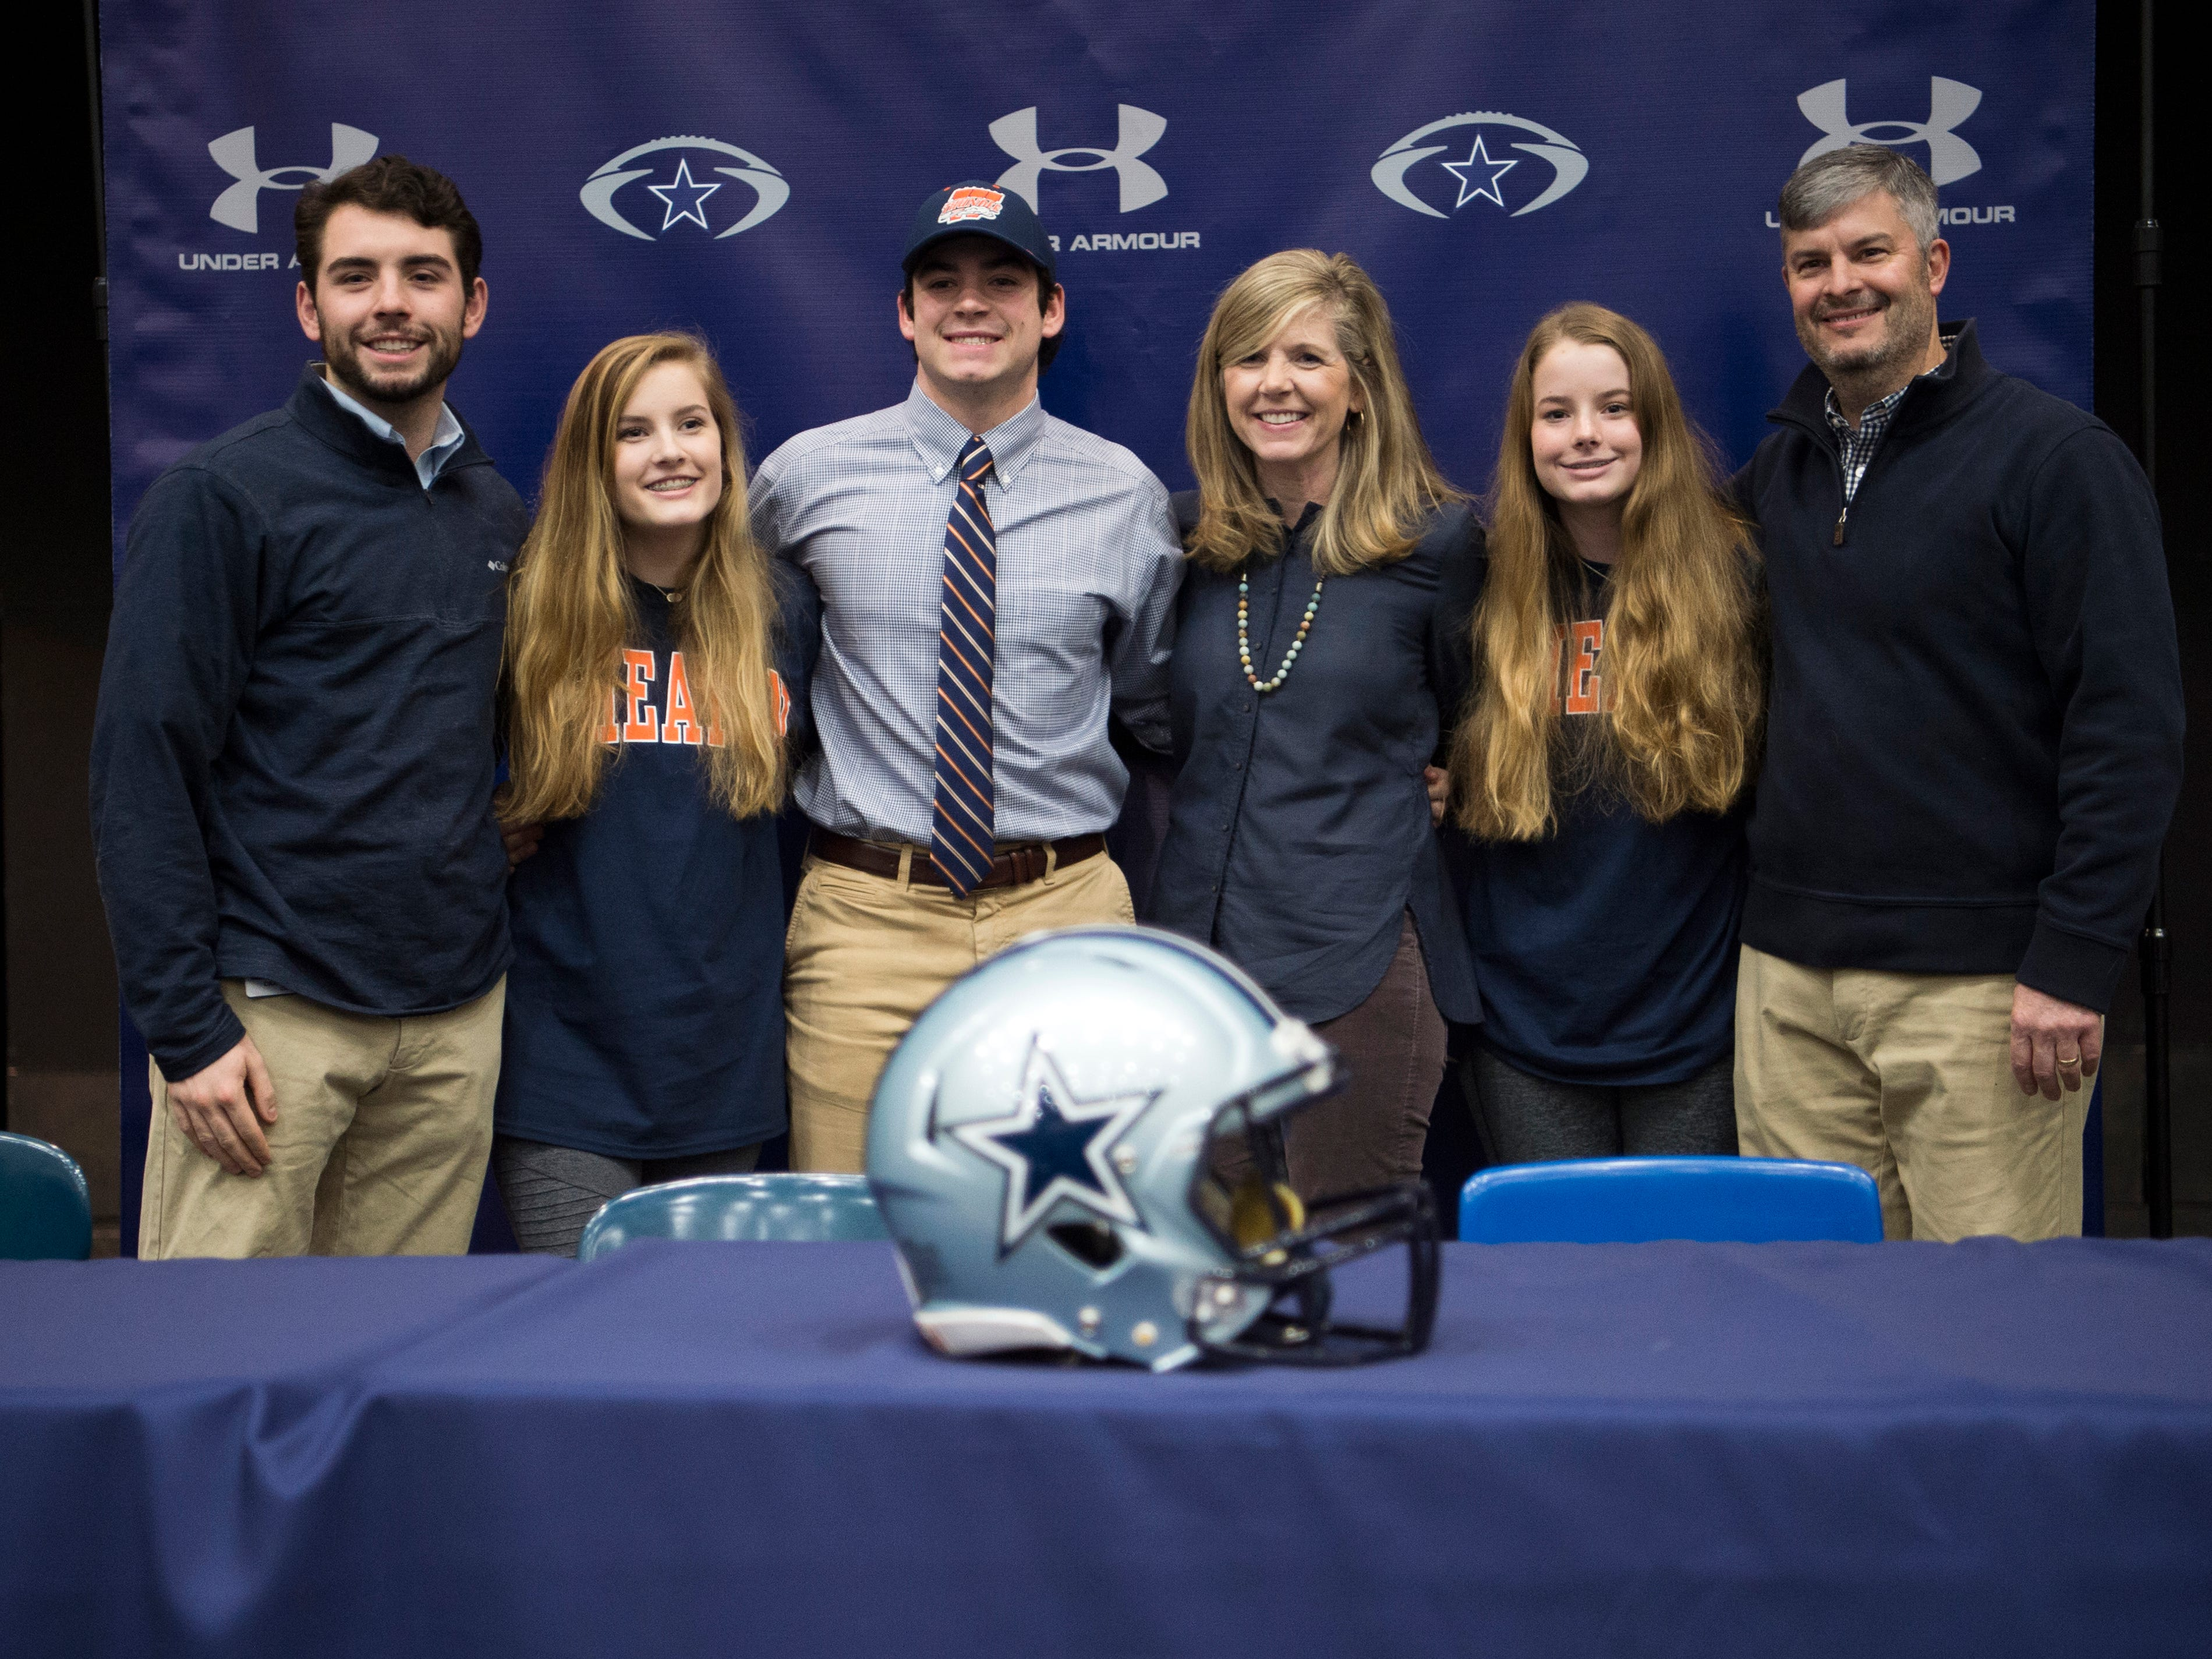 Farragut football player Kyle Carter during a National Signing Day event at Farragut High's auditorium on Wednesday, February 6, 2019.